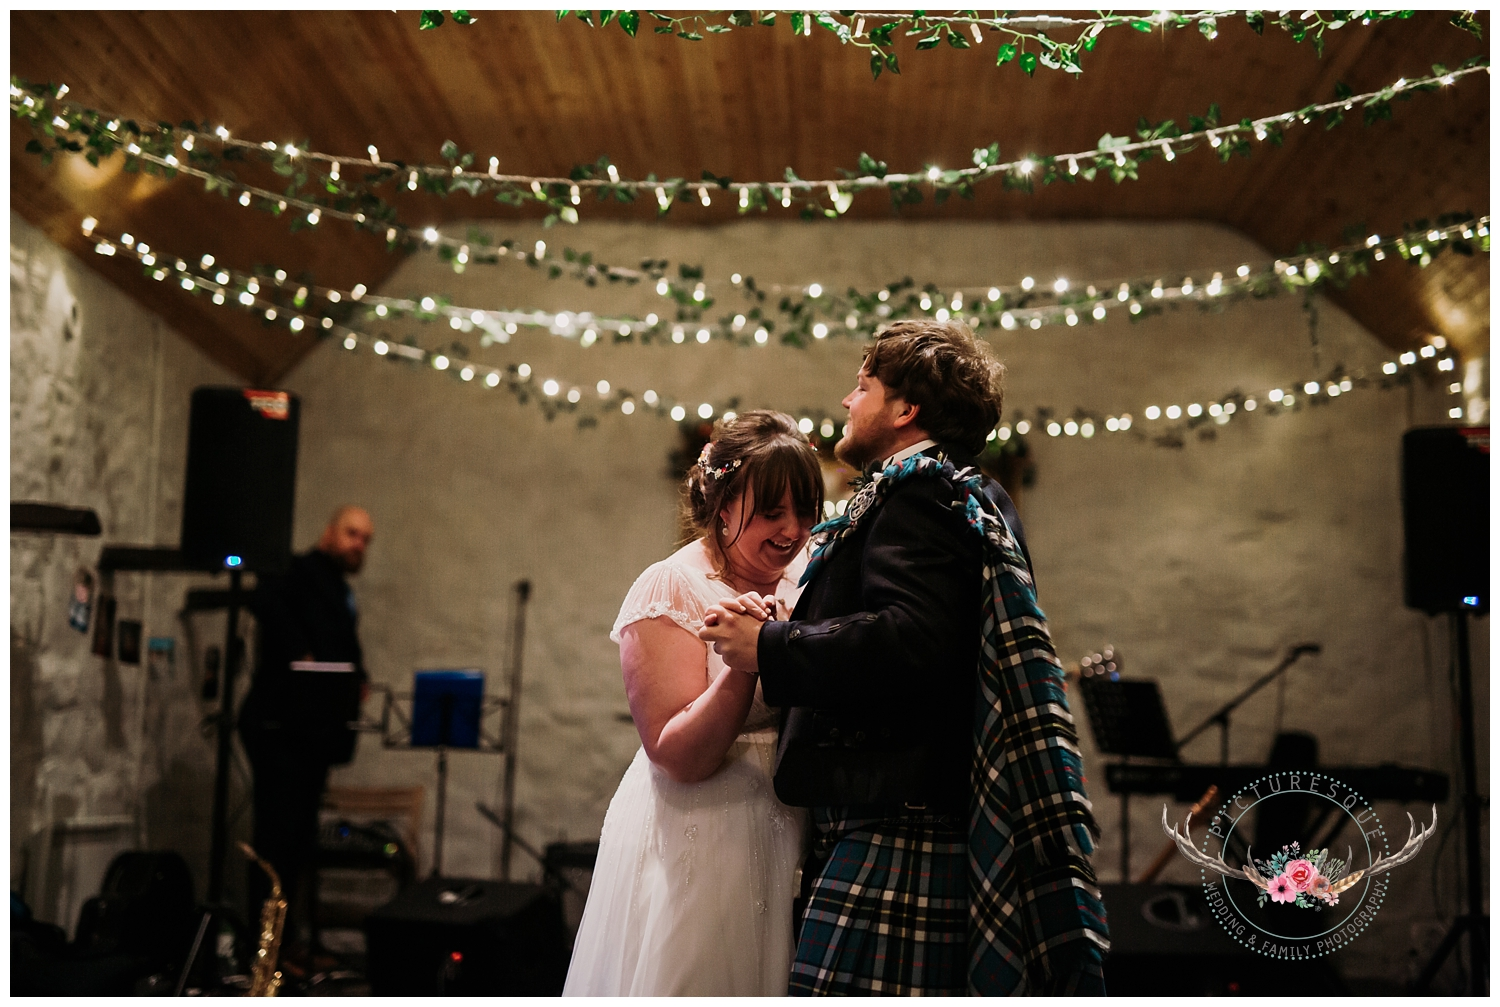 The Barn at Dalduff Farm, Picturesque, WeddingPhotography, Scotland_0044.jpg